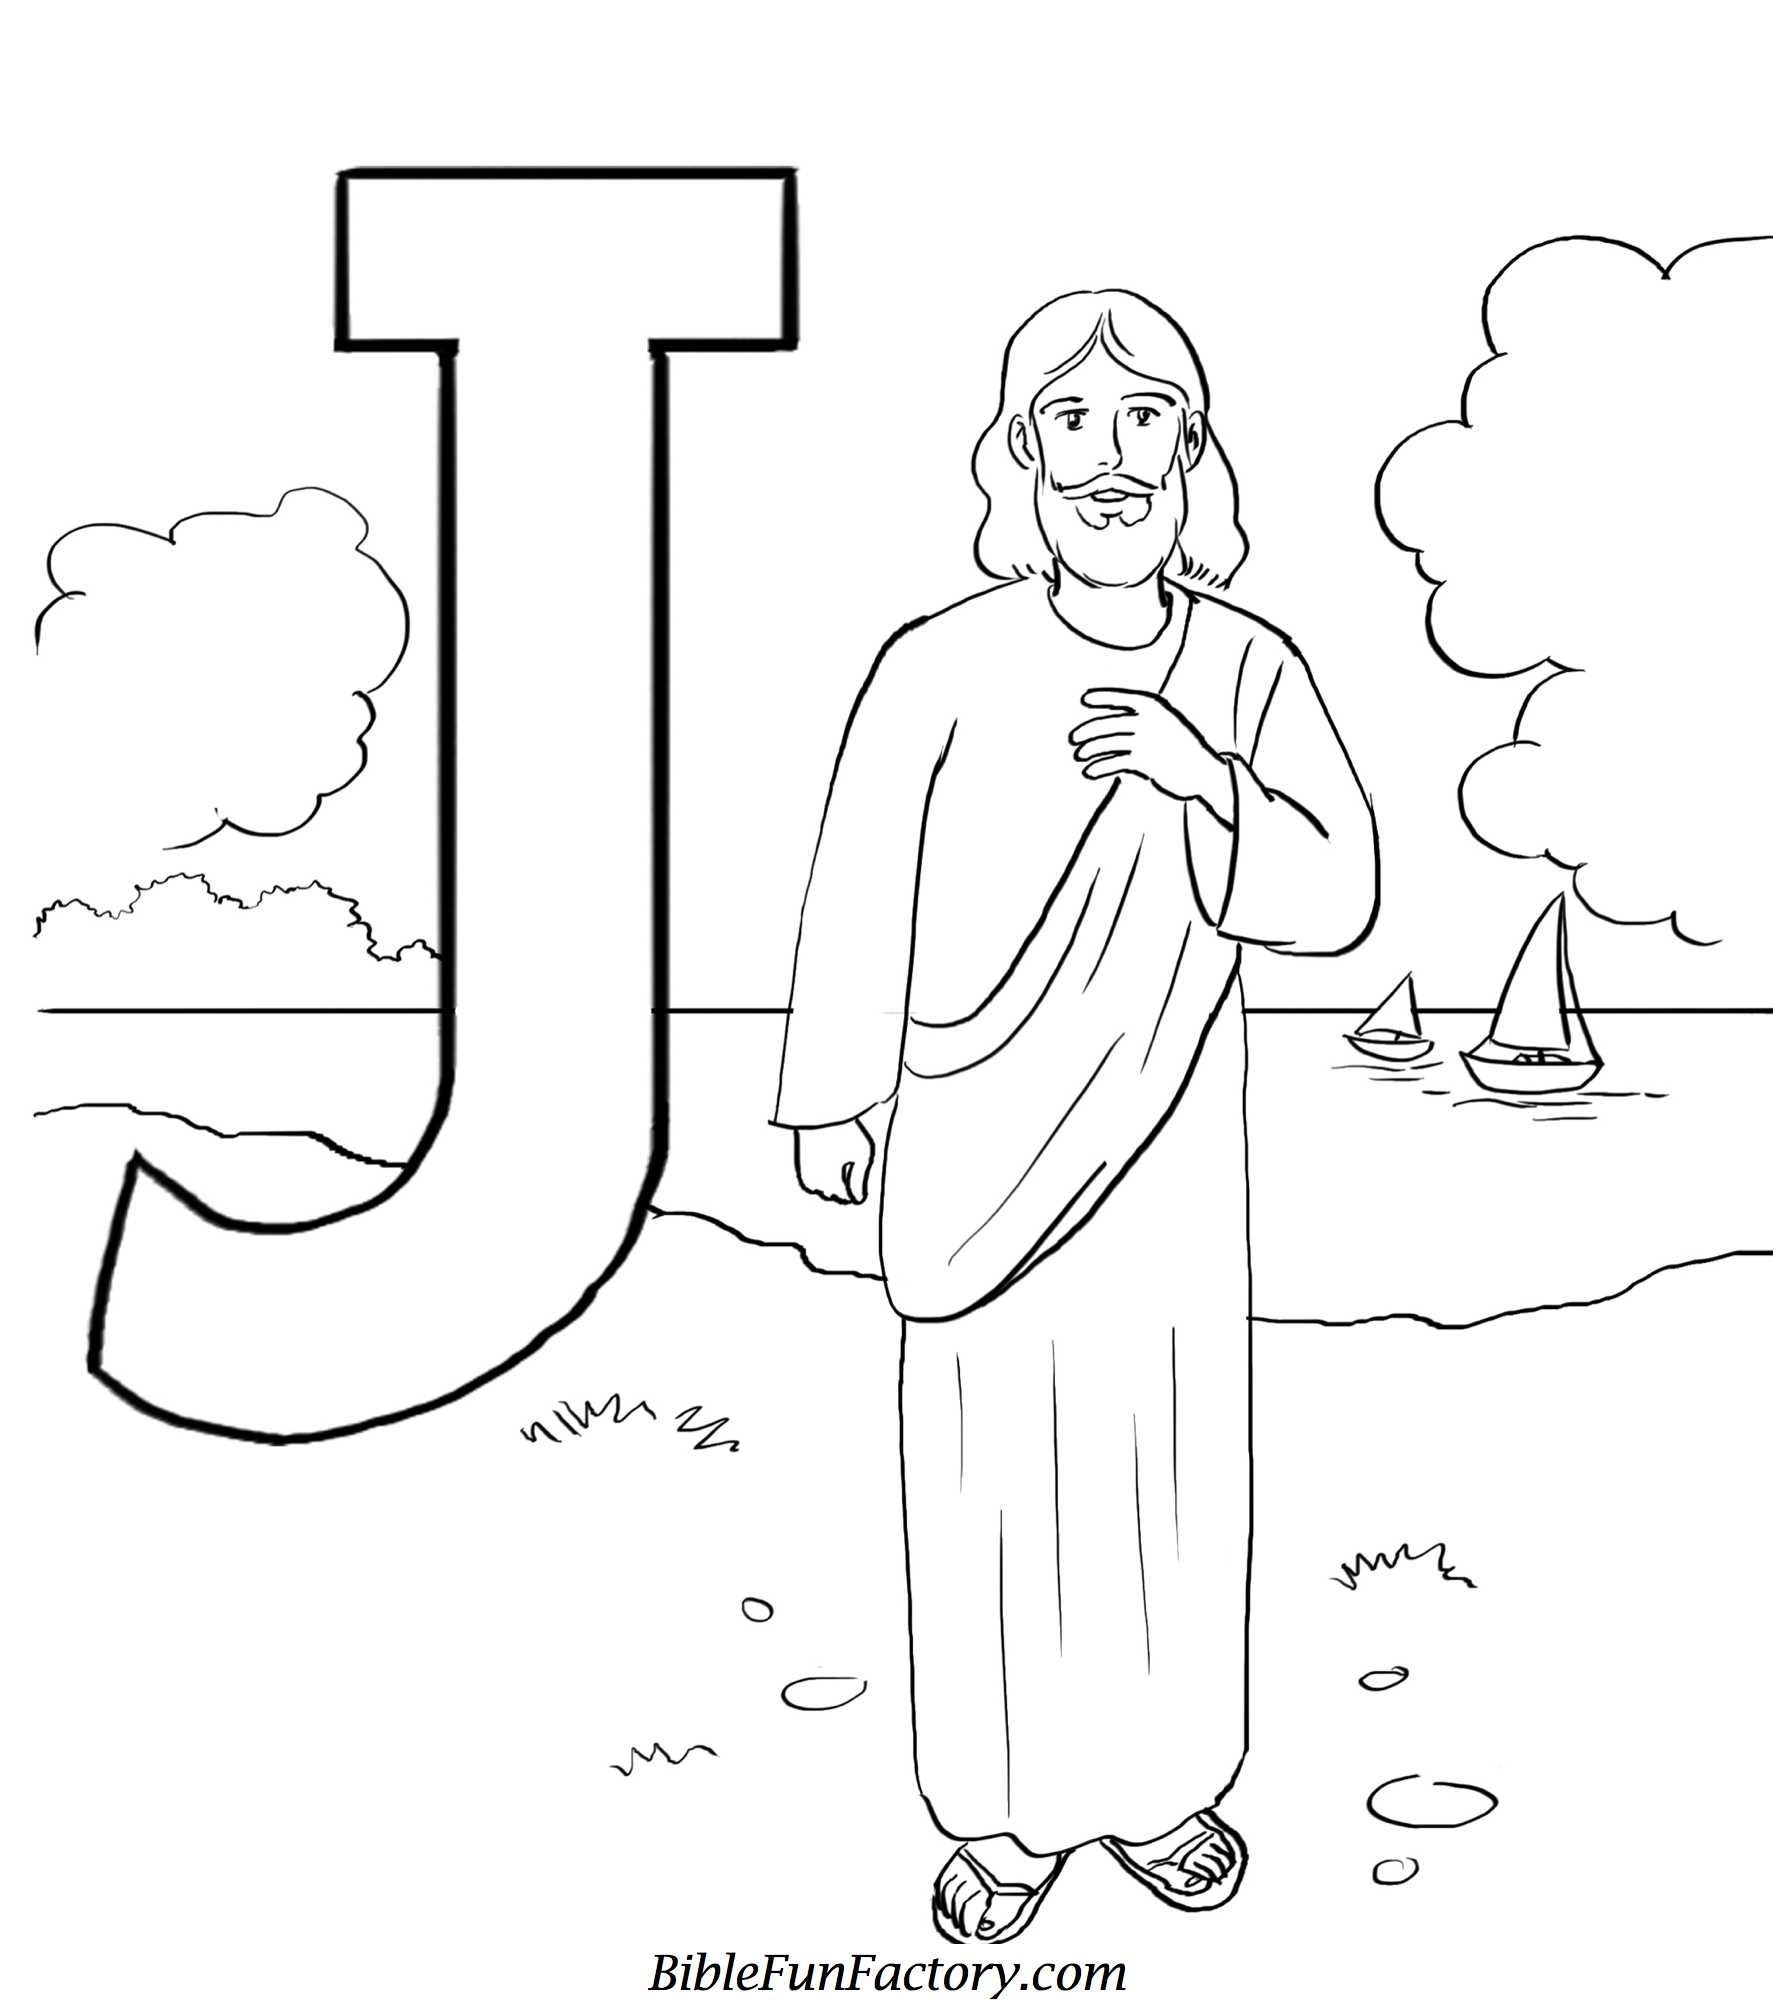 jesus christ coloring pages | is for jesus coloring sheet